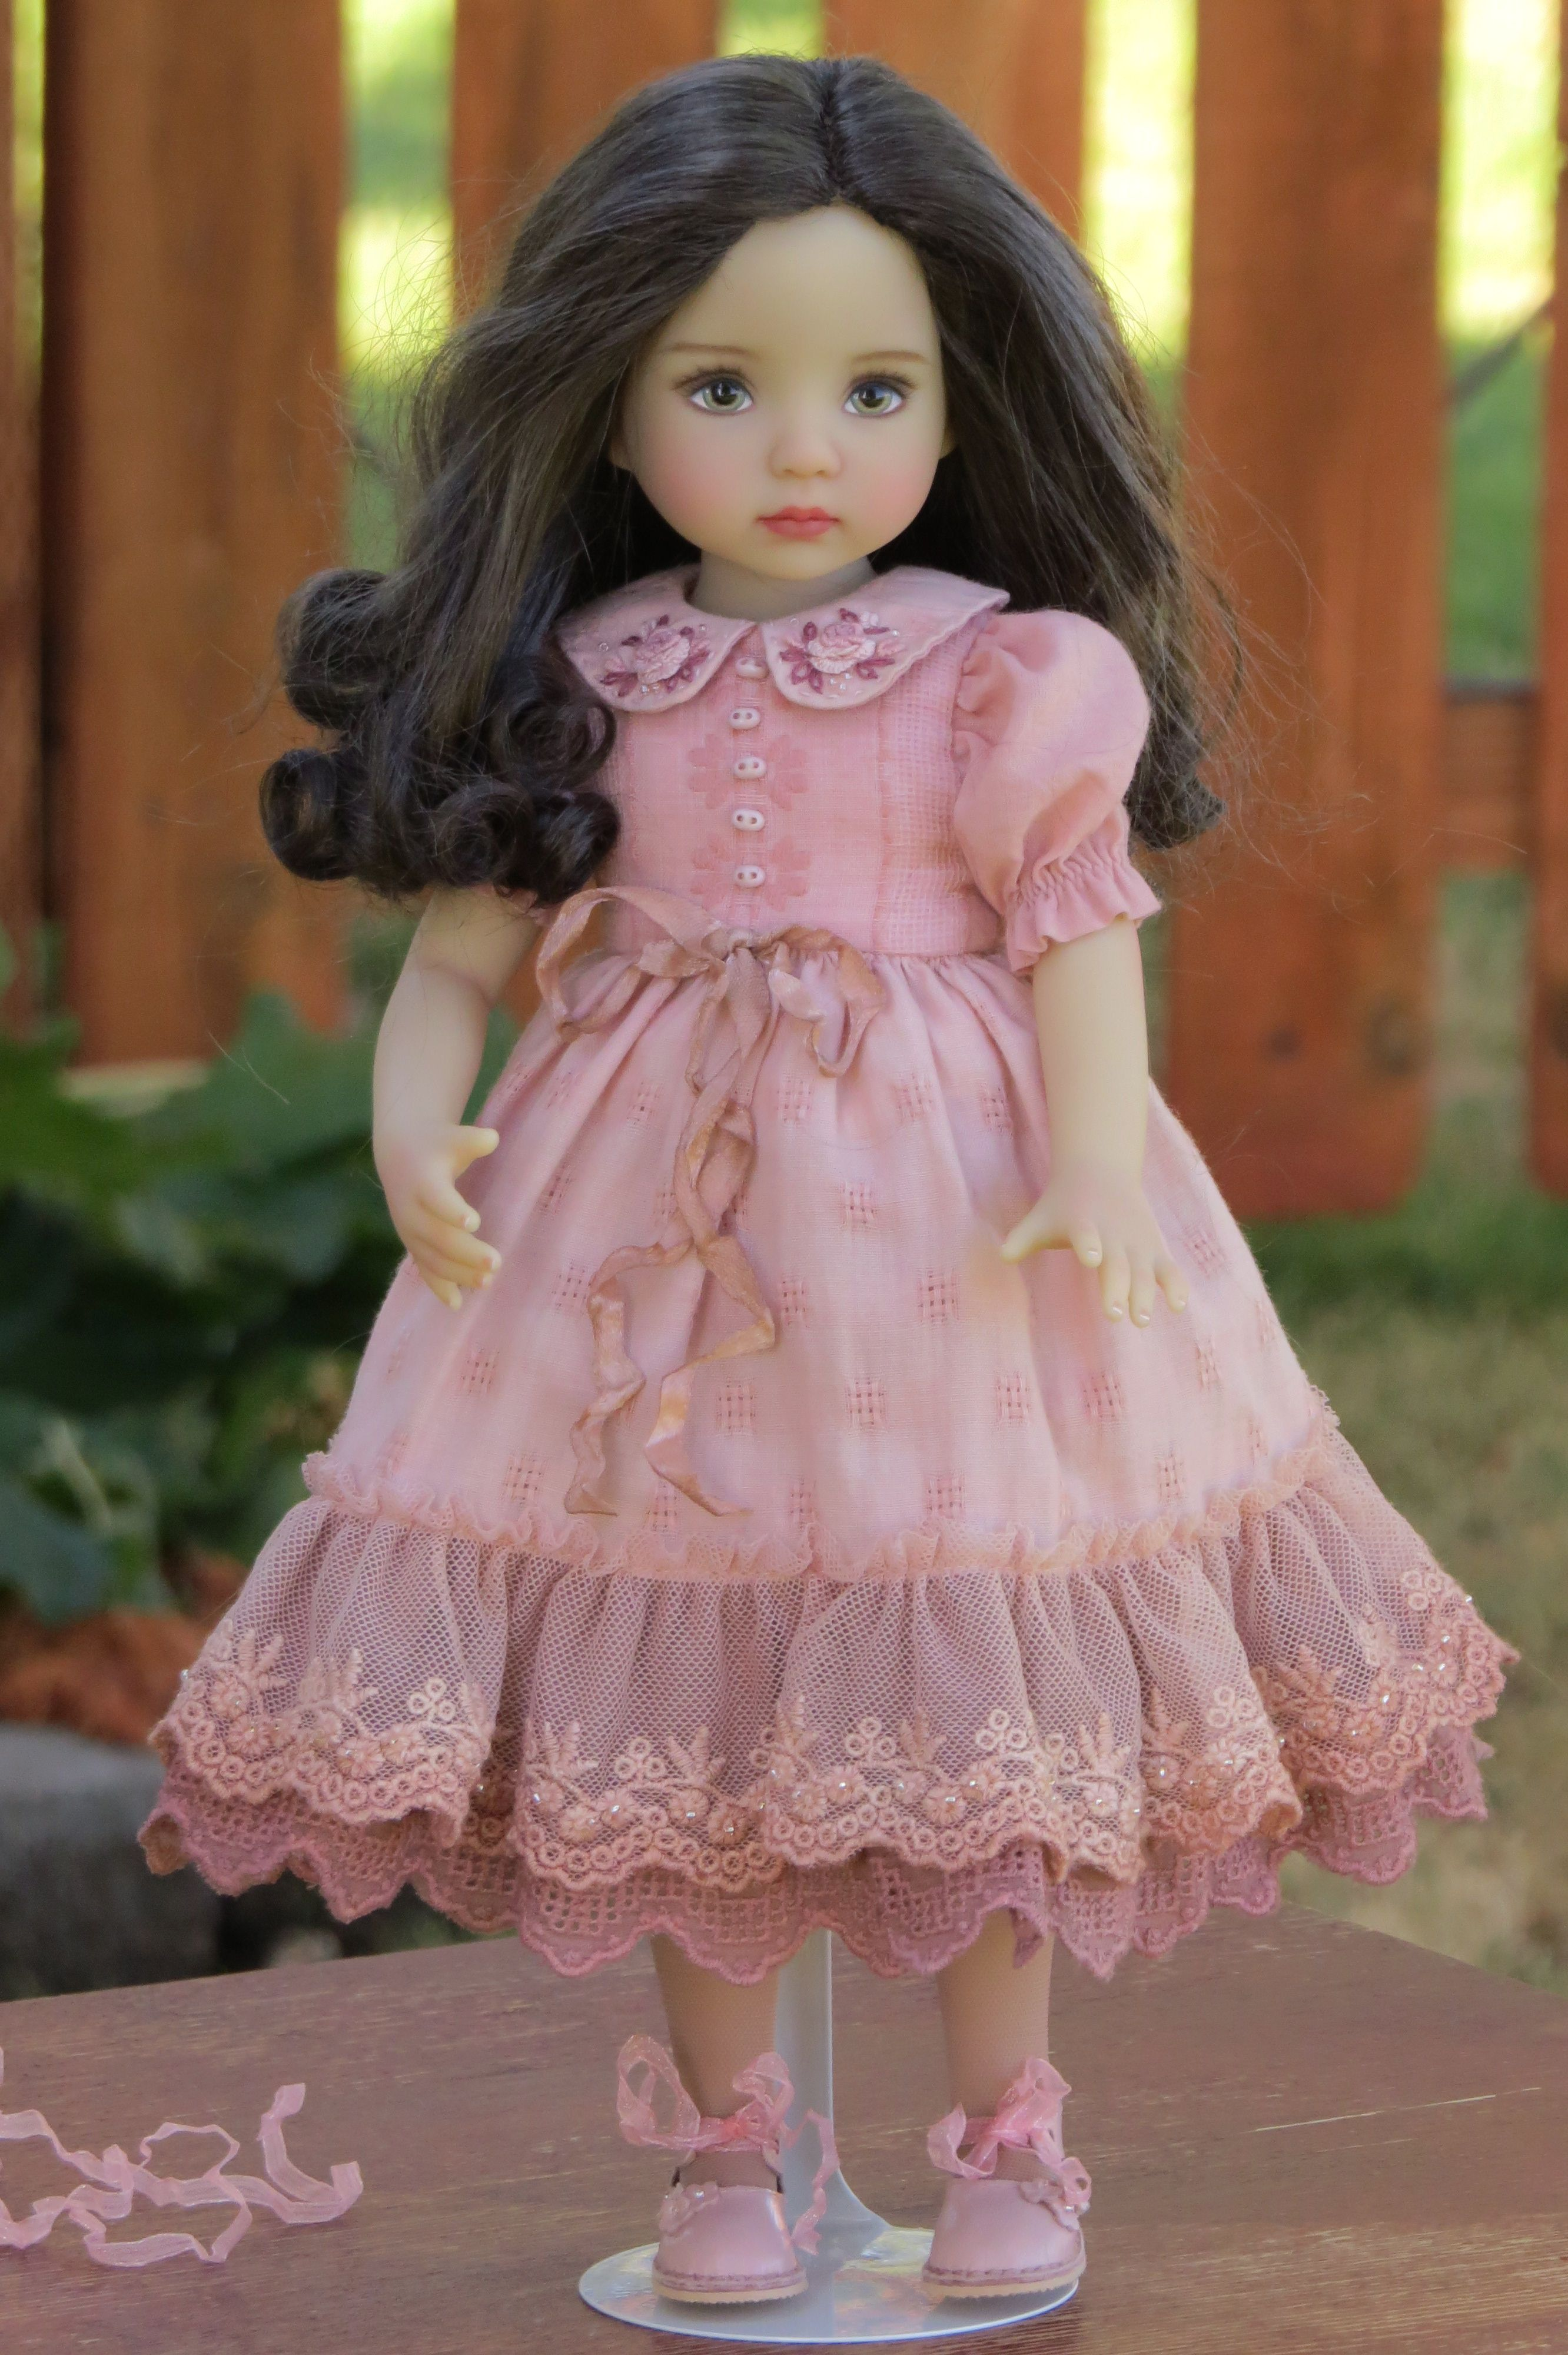 Pin by Norma Kosse on My Dolly Habit Doll dress patterns